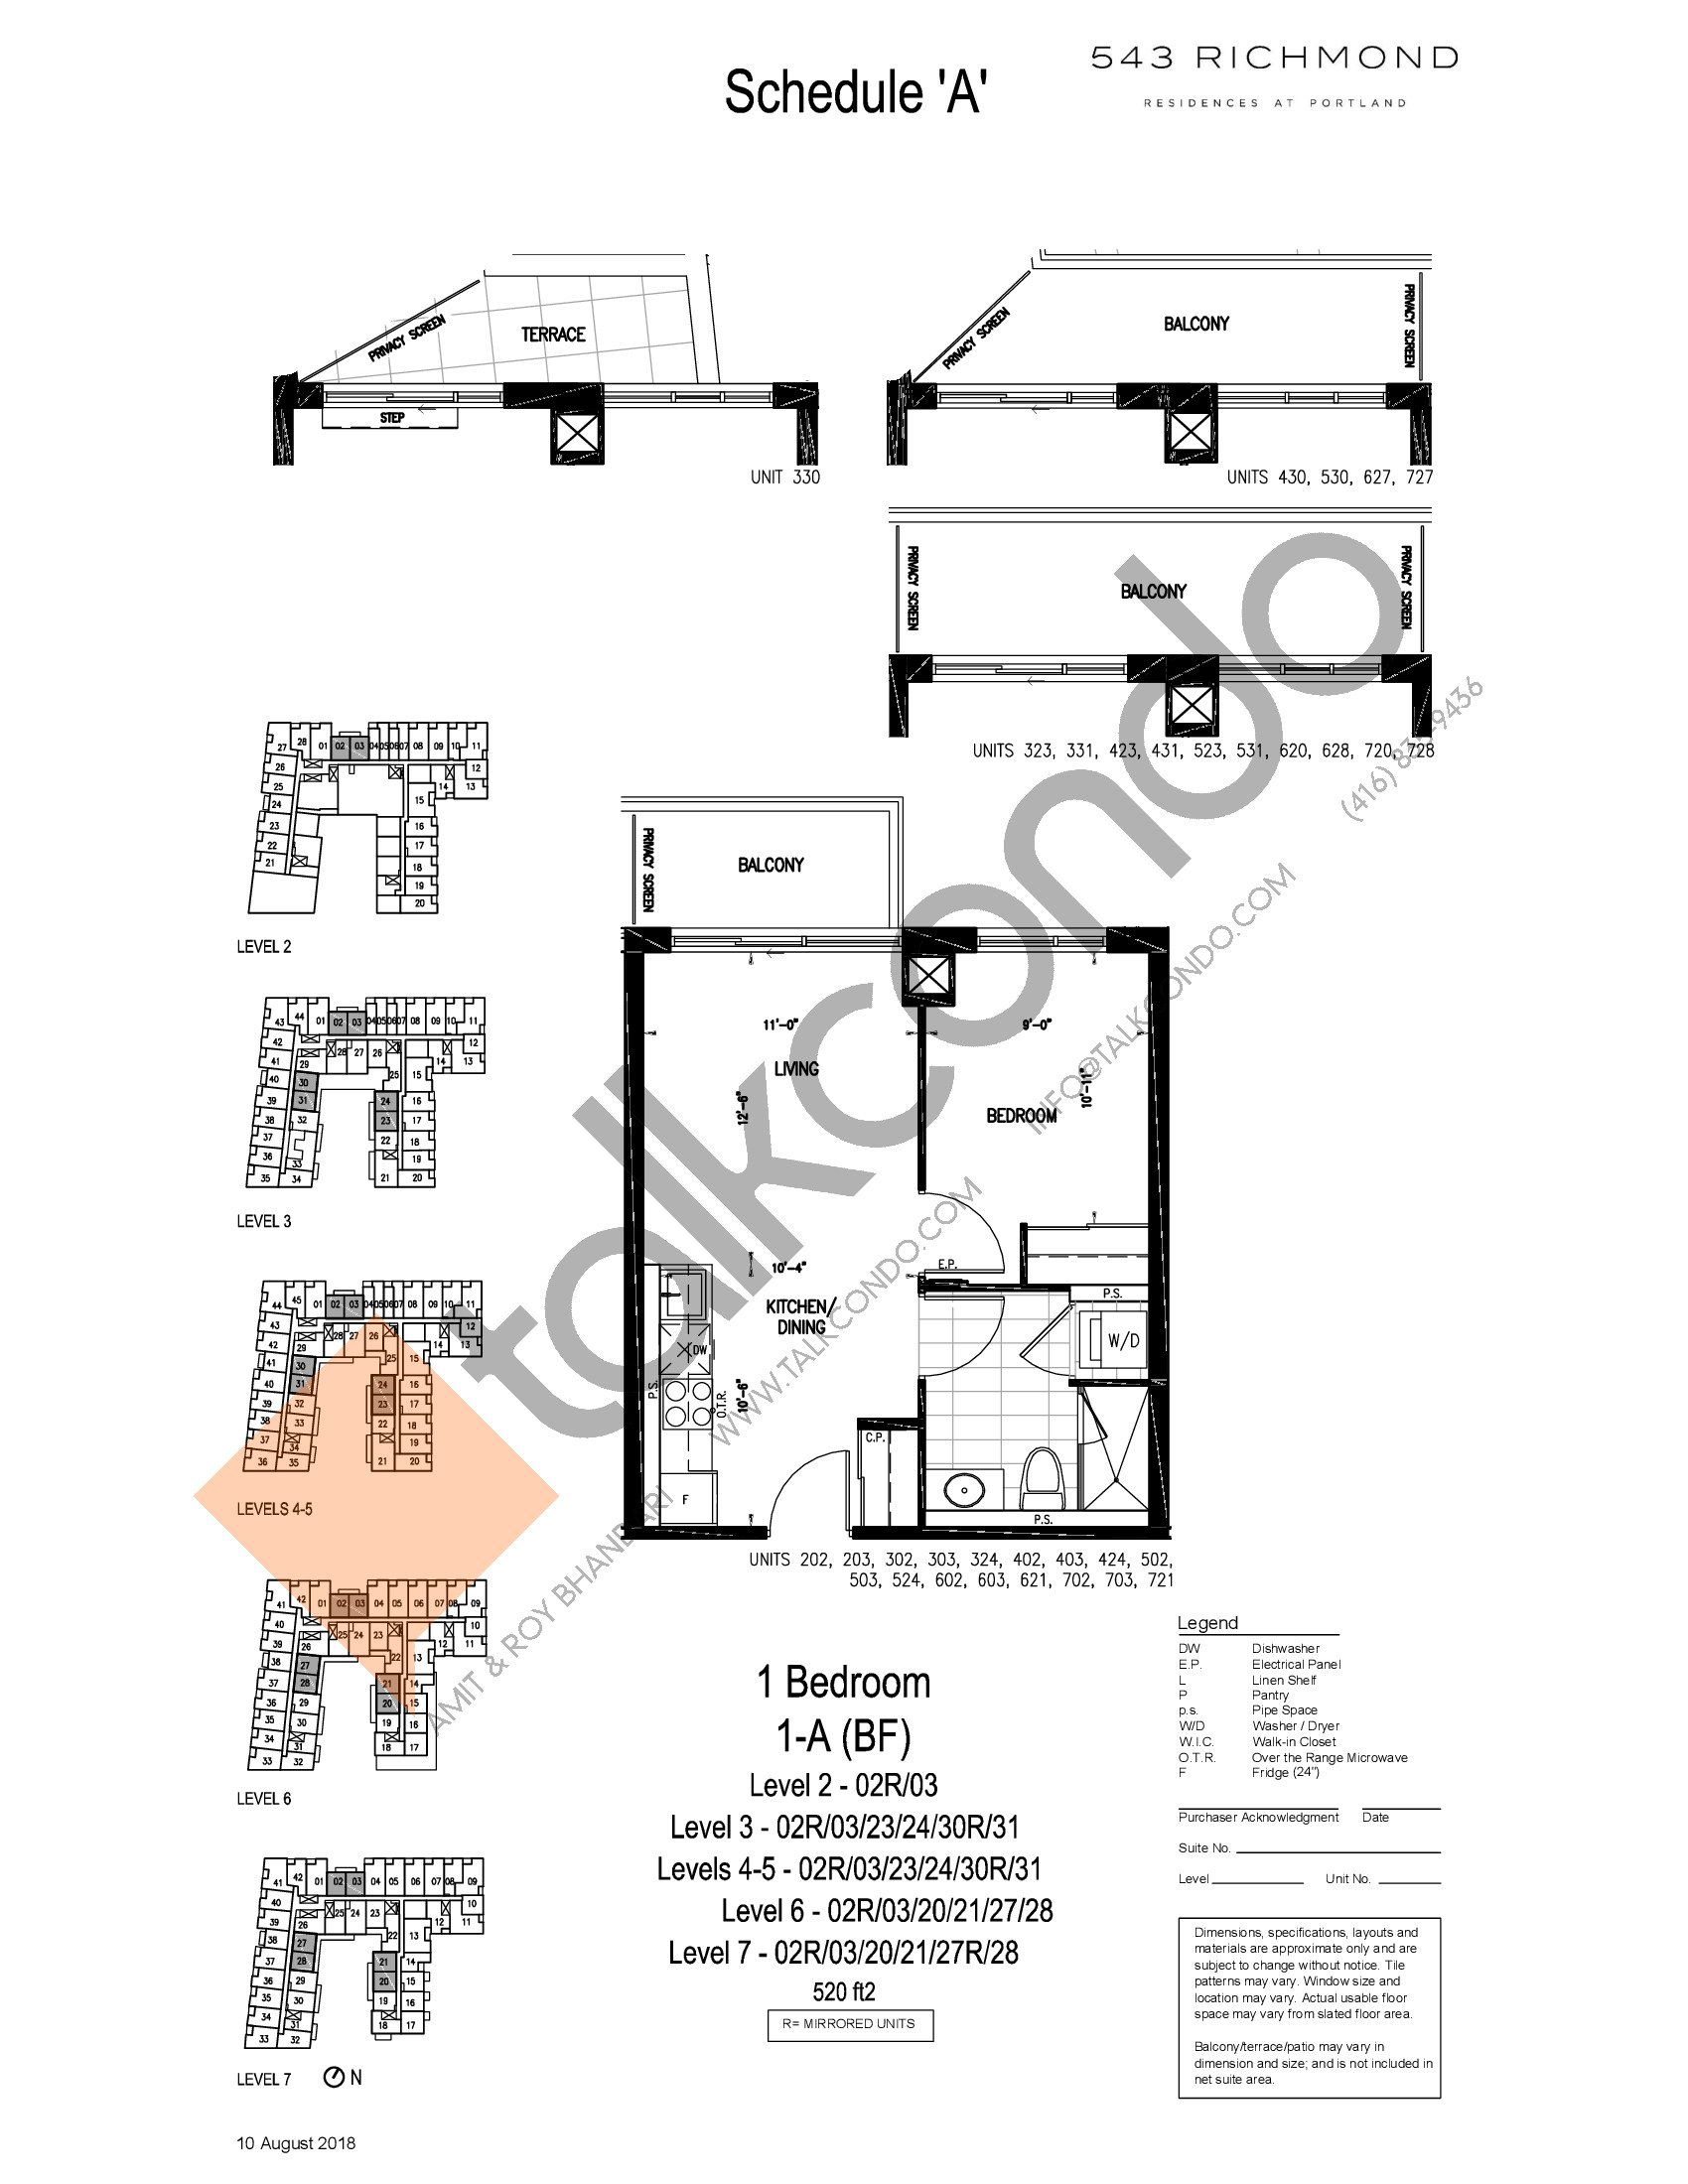 1-A (BF) Floor Plan at 543 Richmond St Condos - 520 sq.ft